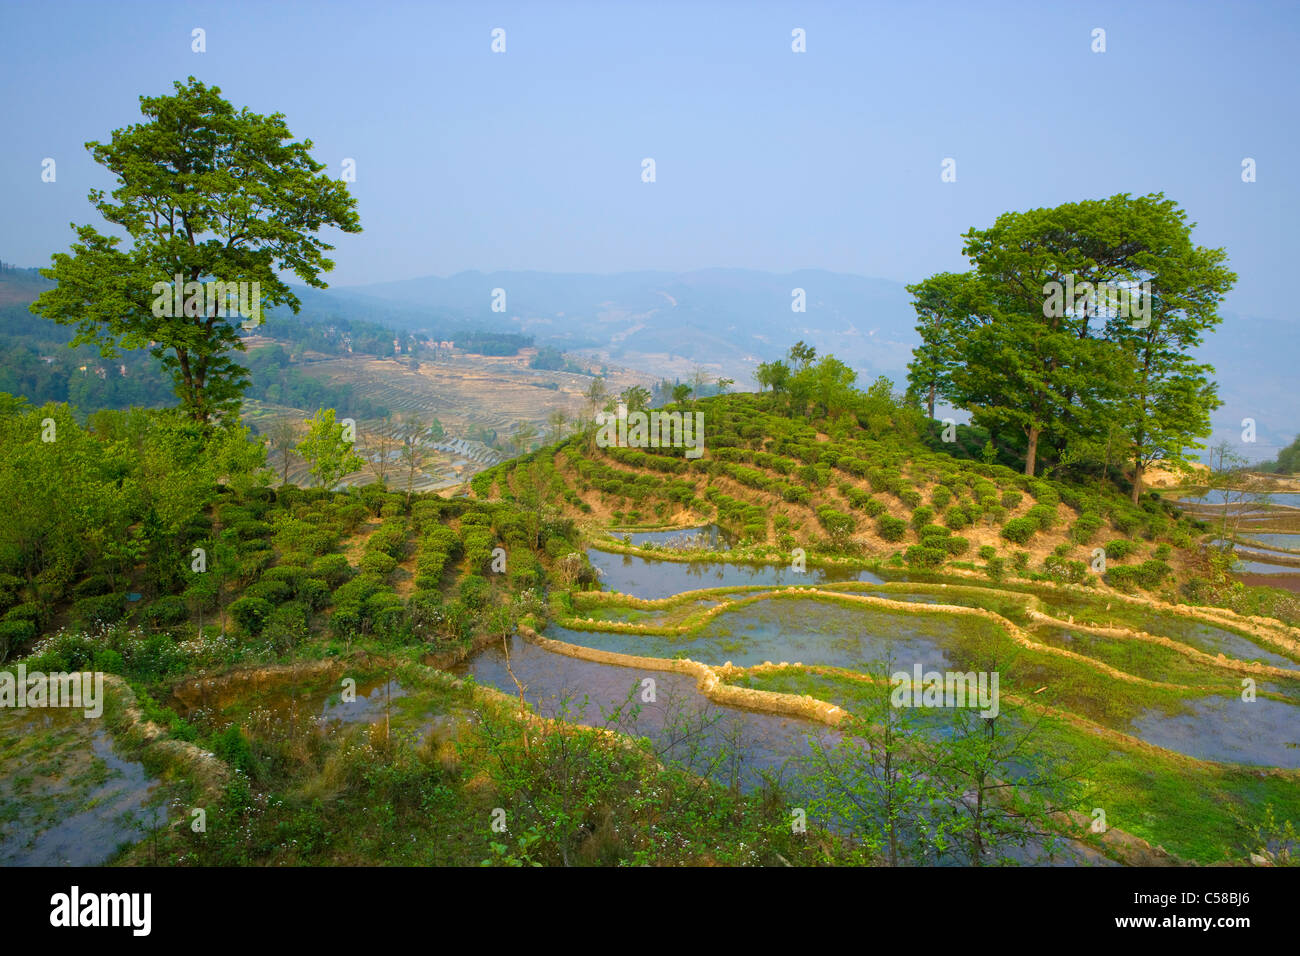 Yuanyang, China, Asia, rice terraces, growing of rice, rice fields, agriculture, water, trees, spring - Stock Image